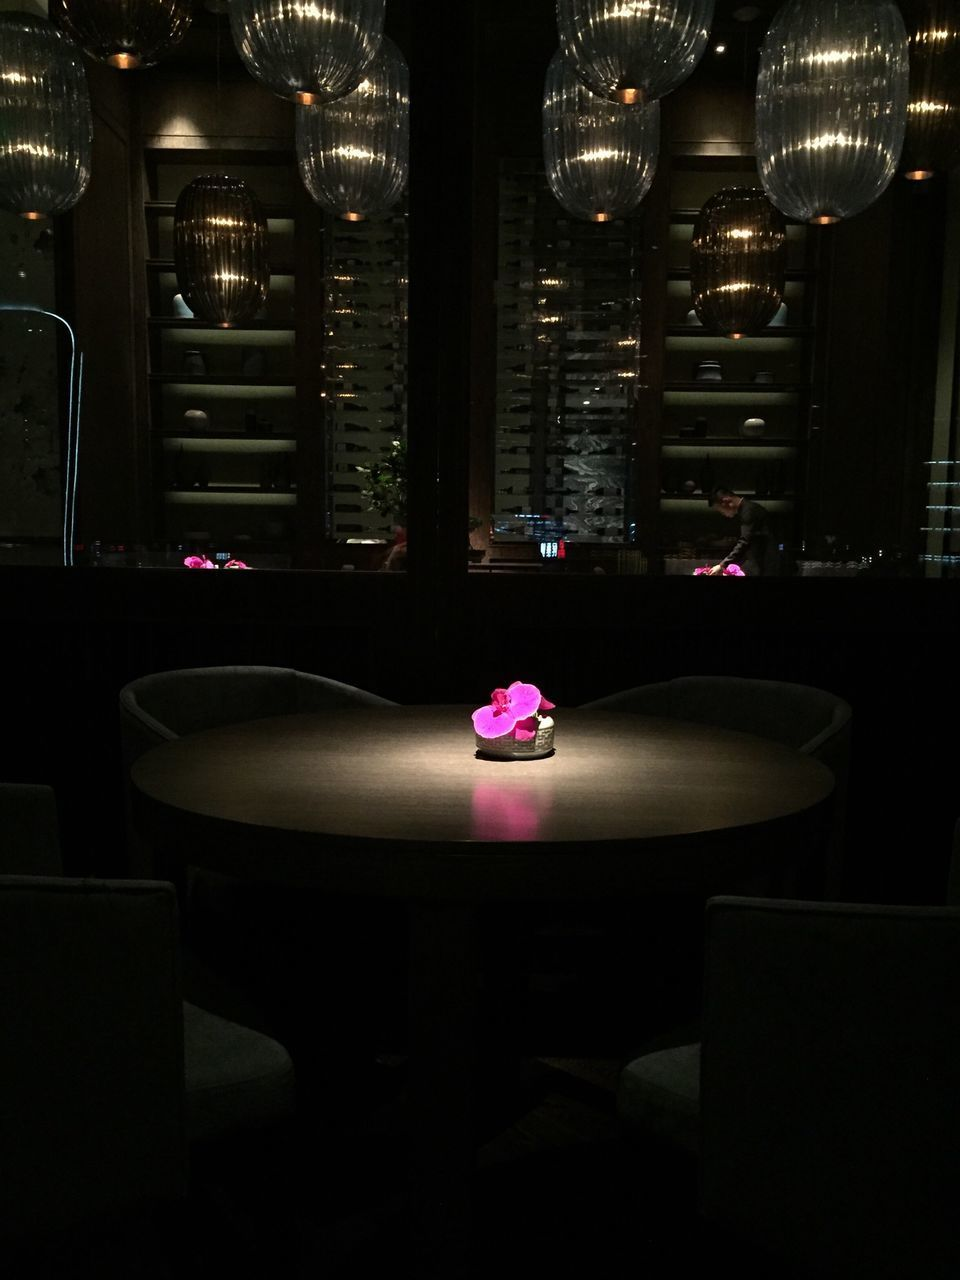 indoors, no people, illuminated, table, night, flower, close-up, freshness